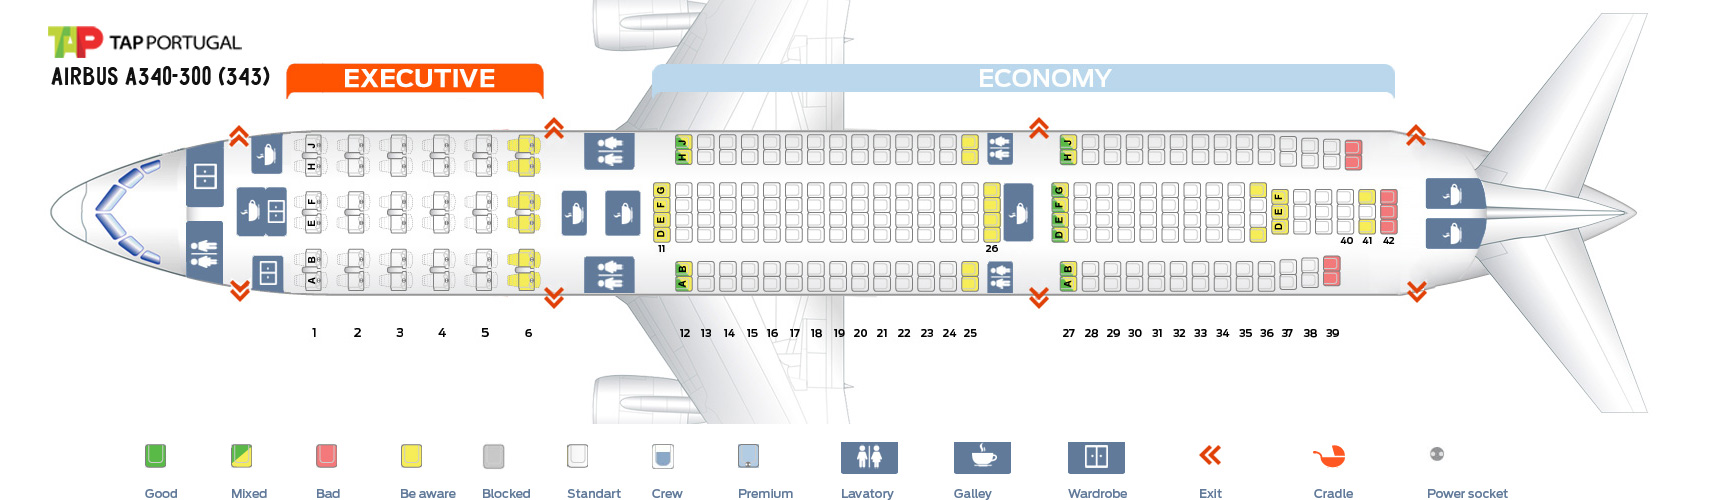 Seat Map Airbus A340-300 Tap Portugal